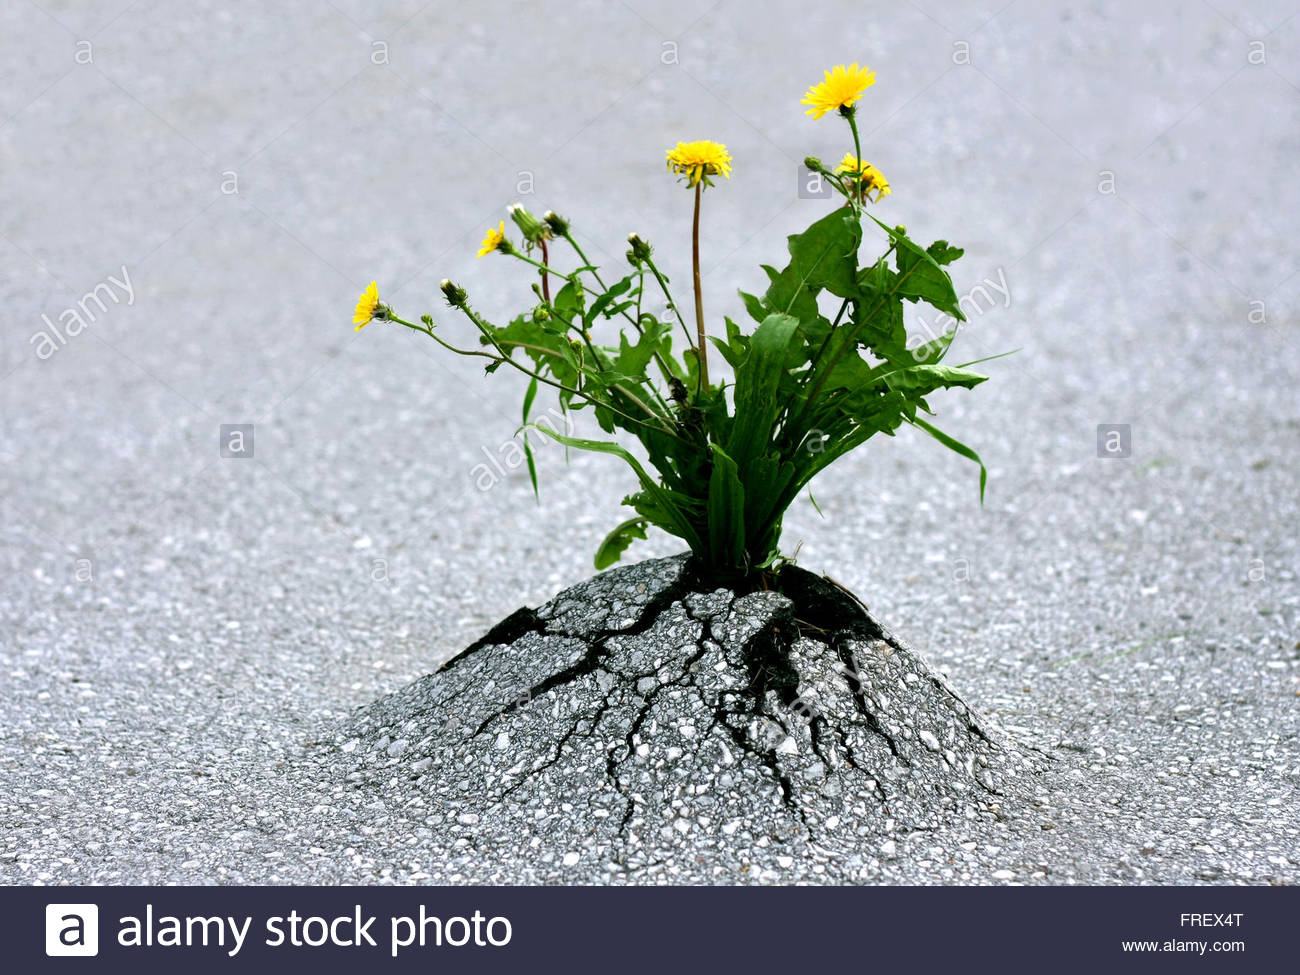 Plants emerging through rock hard asphalt. Illustrates the force of nature and amazing achievements against all - Stock Image